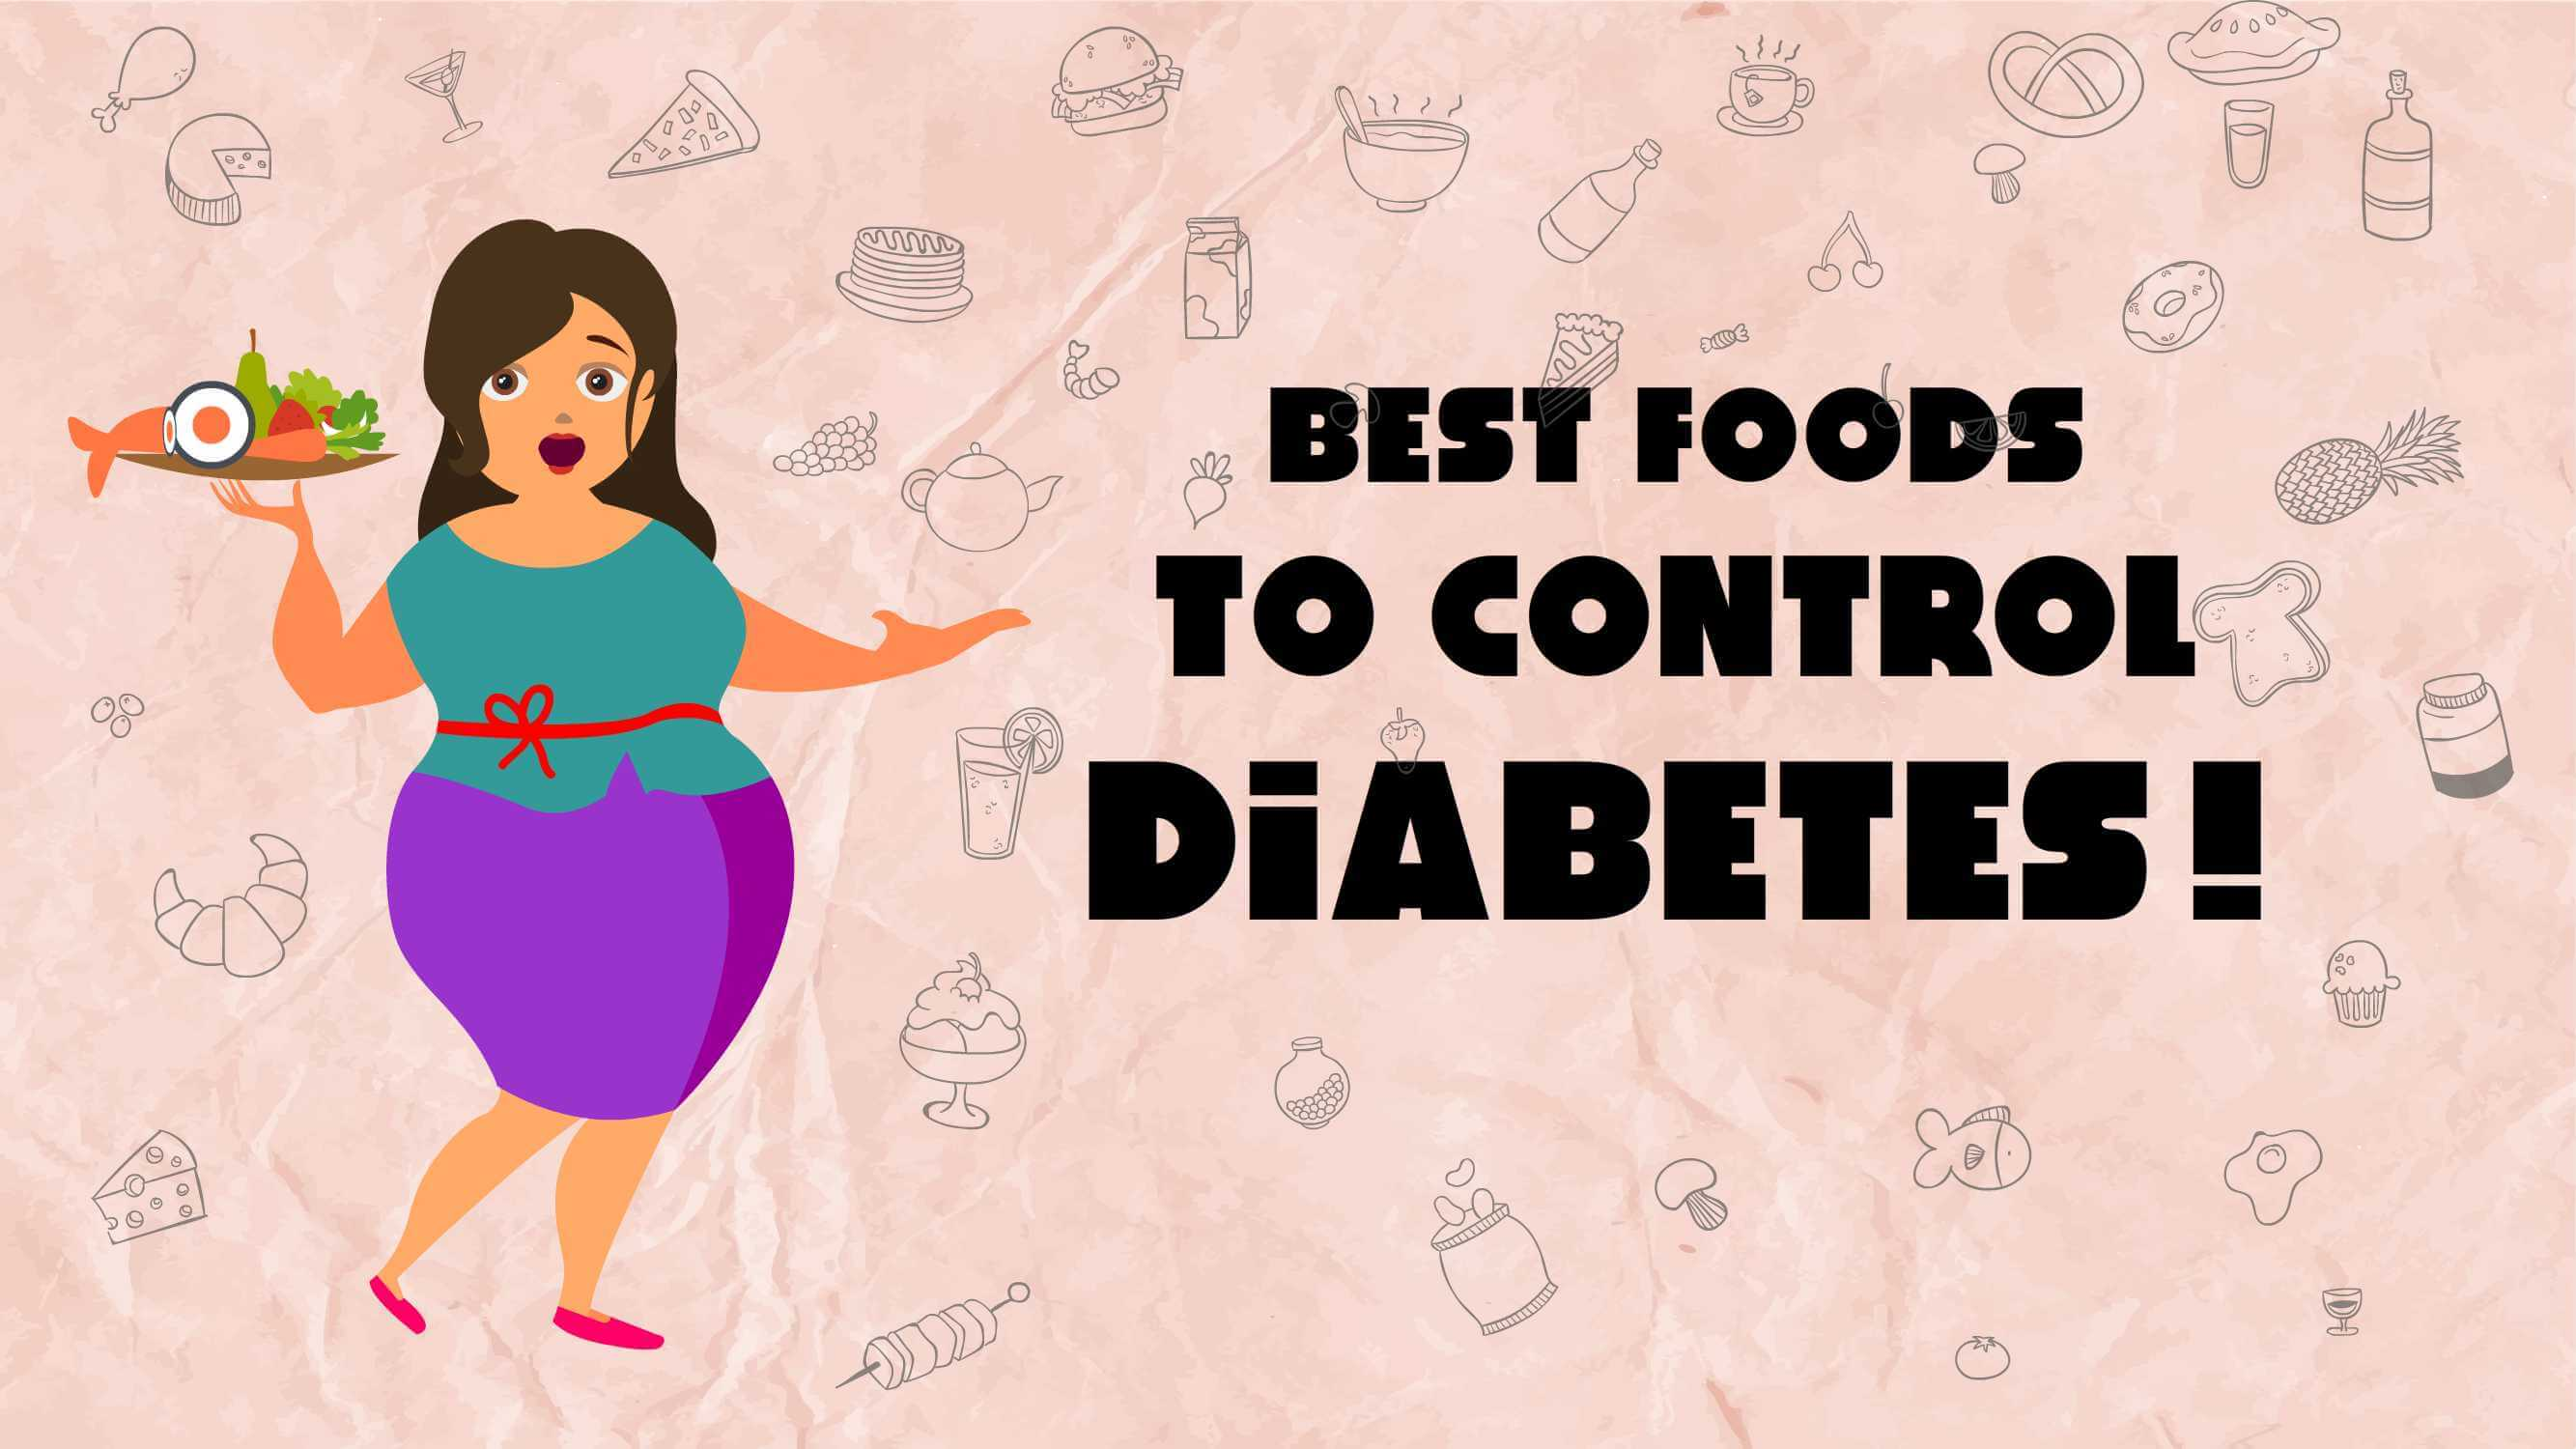 Best Foods to control diabetes